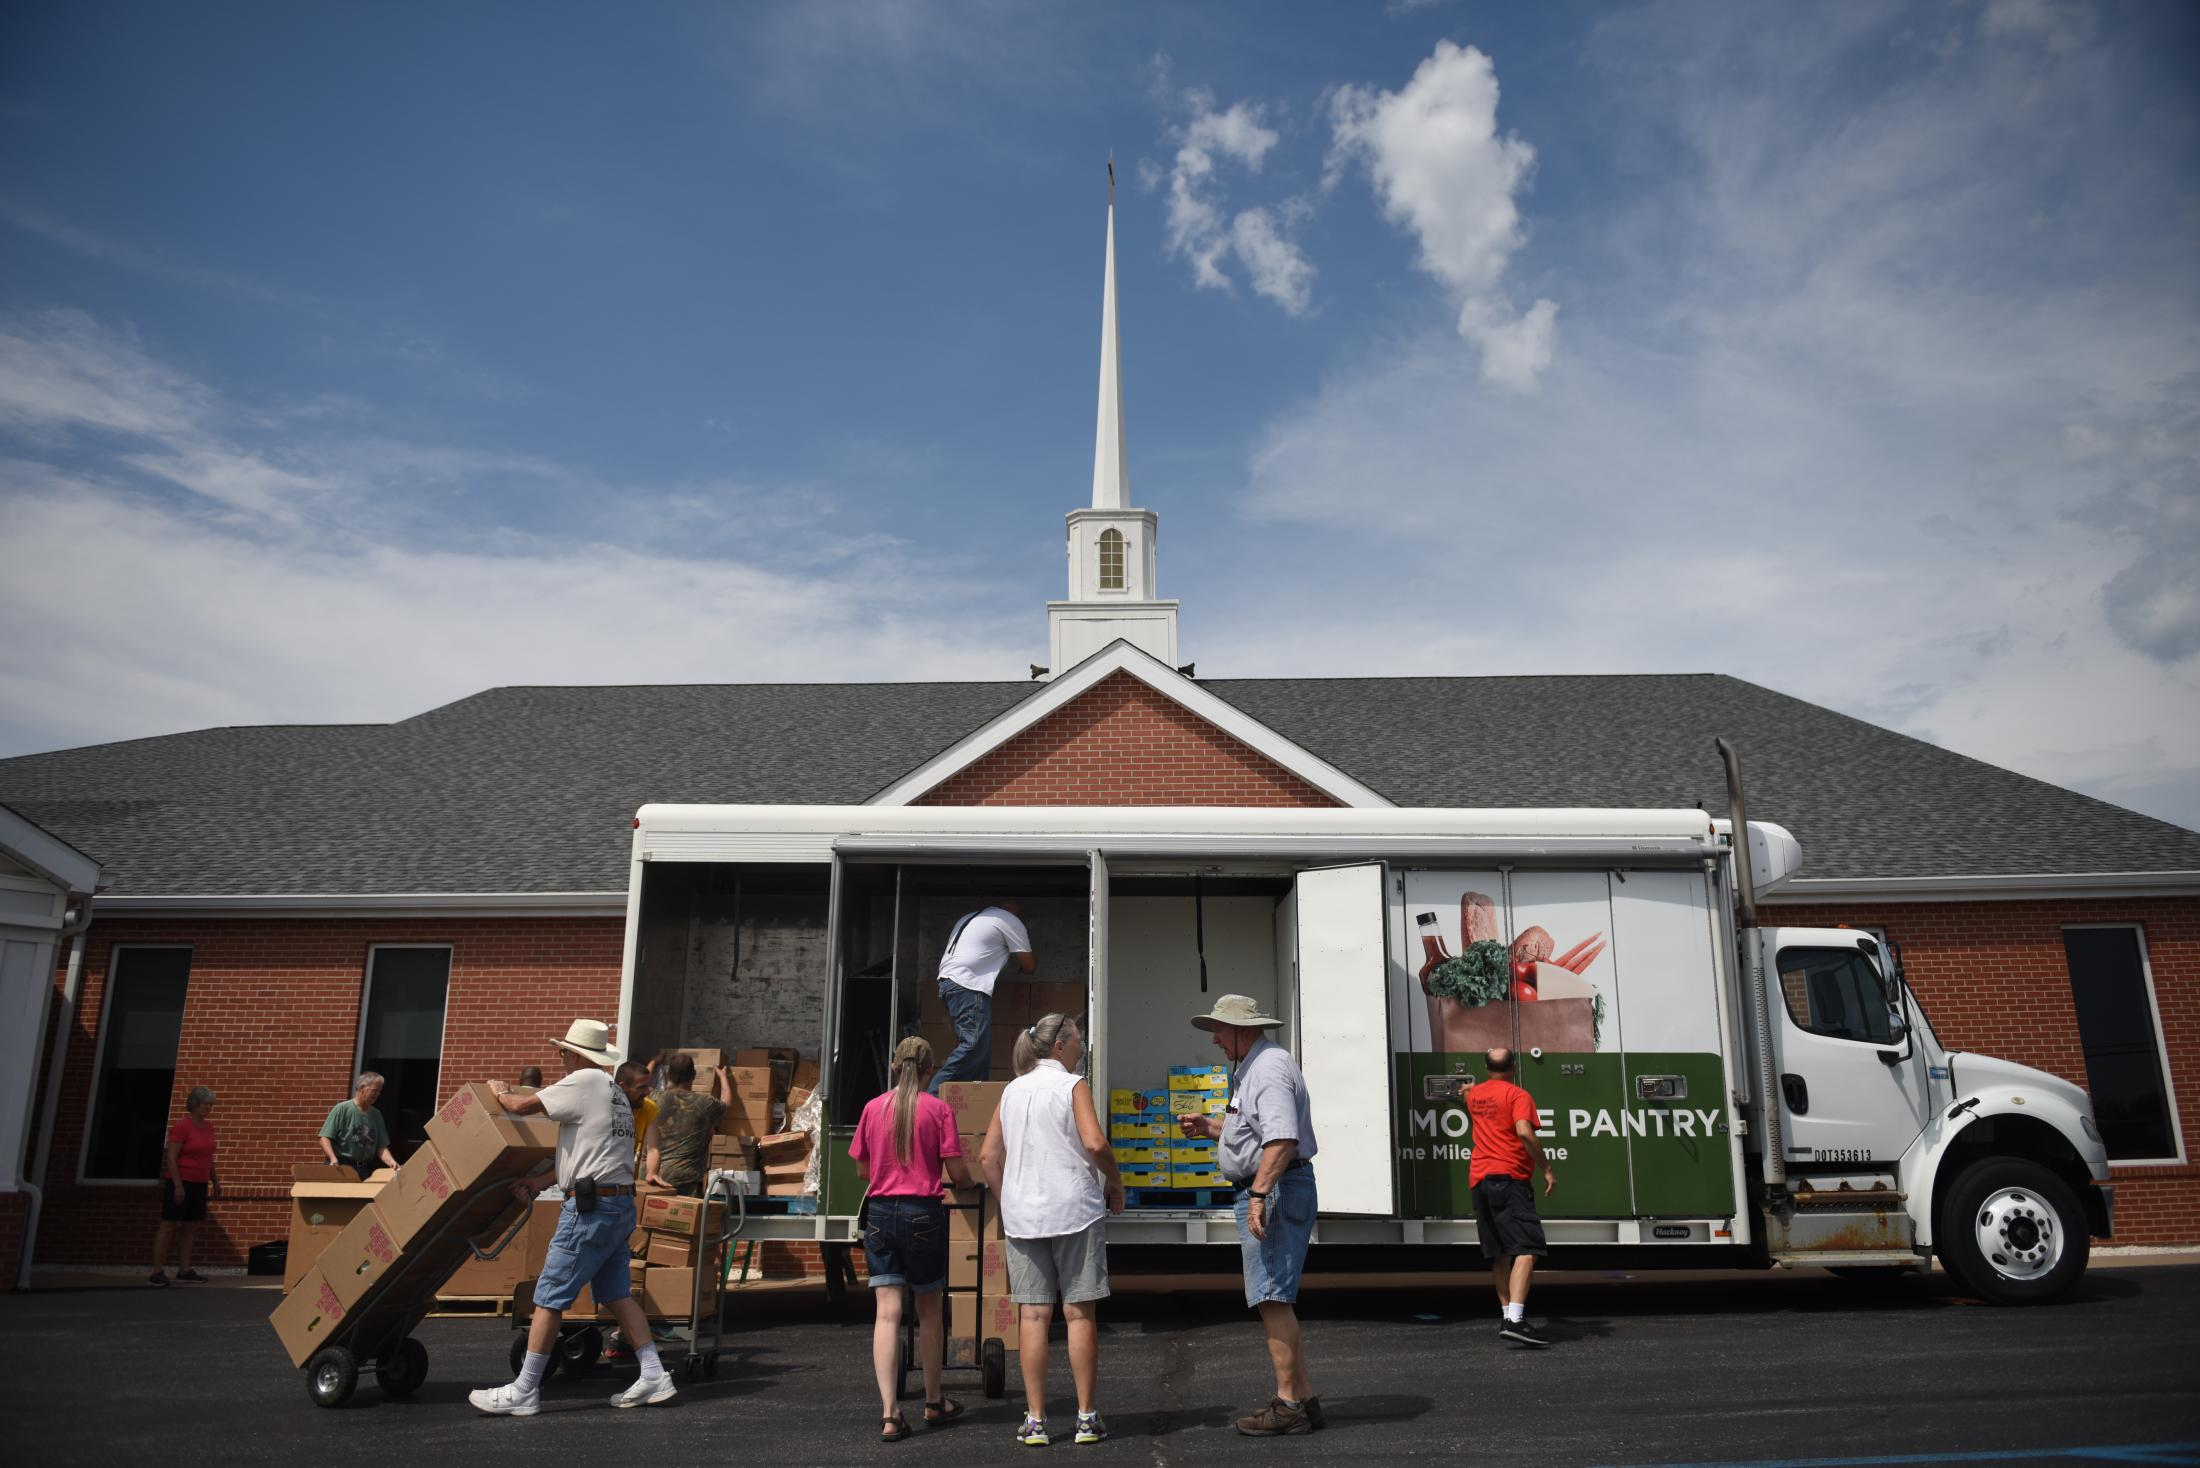 Volunteers at Ashland Baptist Church unload food delivered by The Food Bank for Central & Northeast Missouri truck Aug. 20, 2019 in Ashland, Missouri. The church hosts a drive-thru food bank for those in need every third Tuesday of each month.